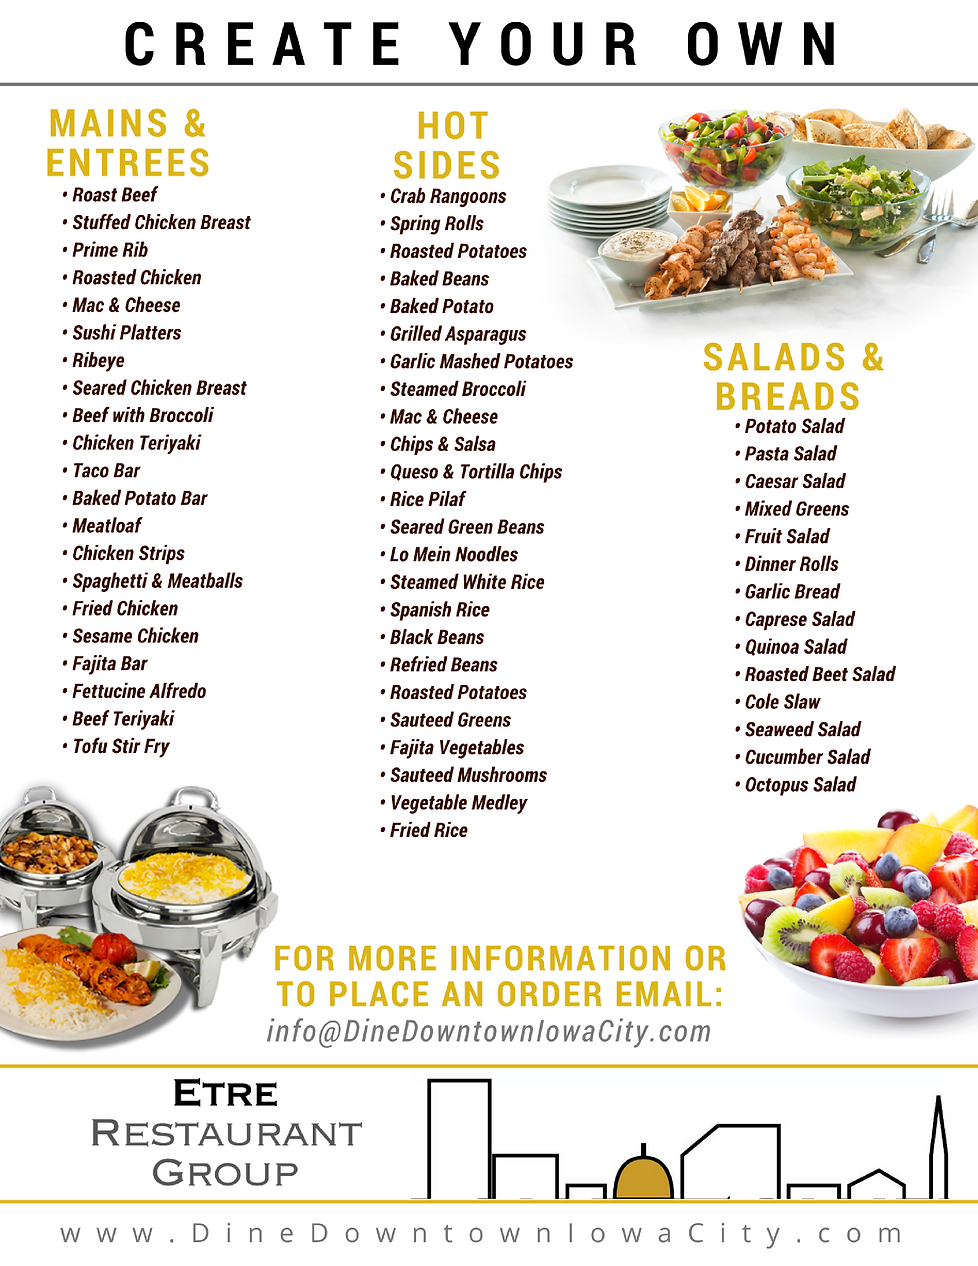 Dine Downtown Iowa City customizable catering menus are available to meet any taste and budget.  Email the Etre Restaurant Group at info@dinedowntowniowacity.com to learn more!